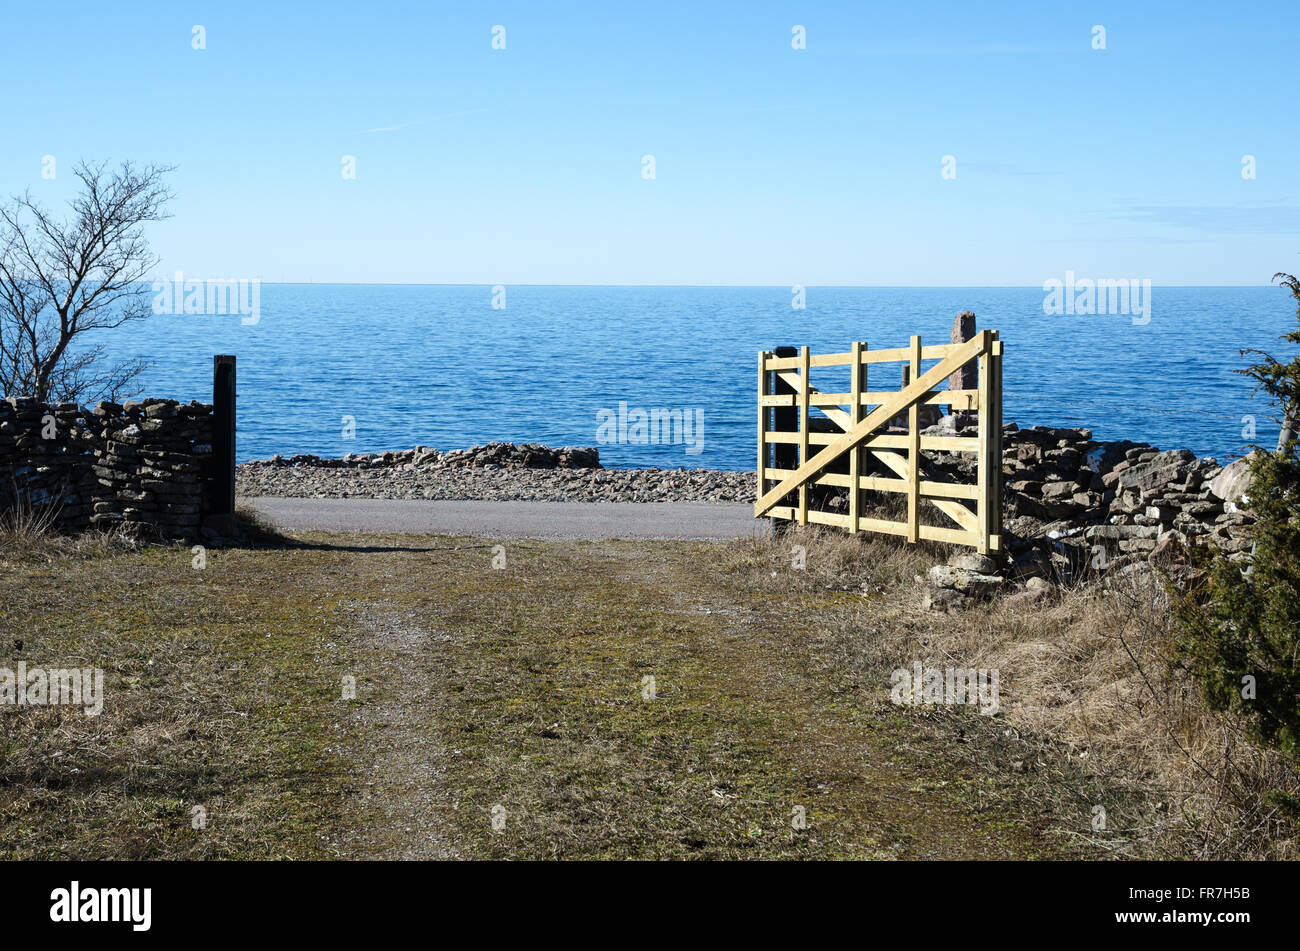 Open traditional wooden farm gate by the coast at the Swedish island Oland - Stock Image